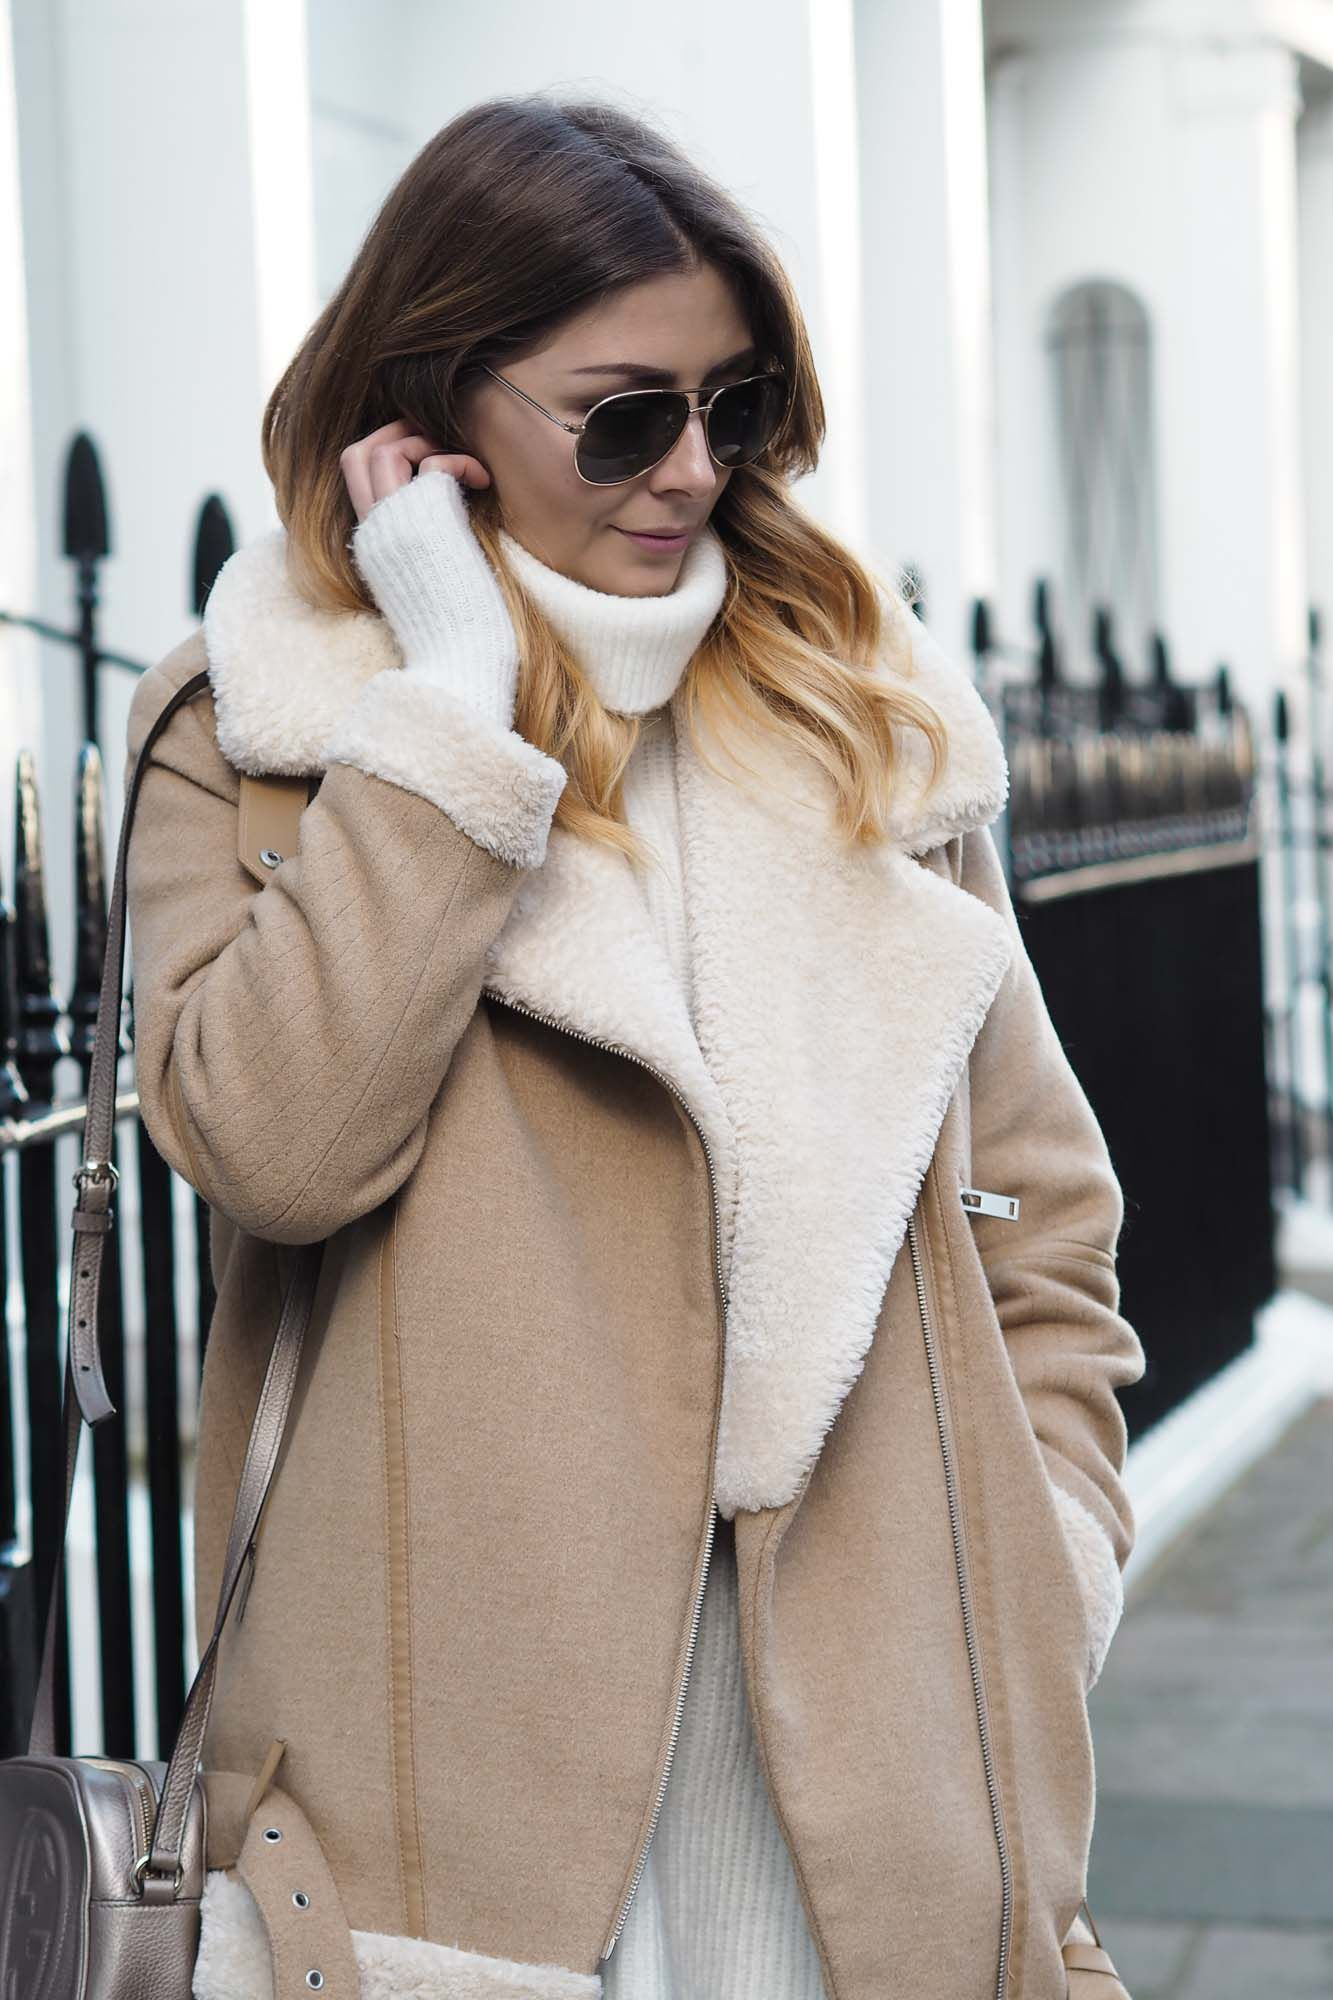 The shearling aviator jacket is an absolute wardrobe must